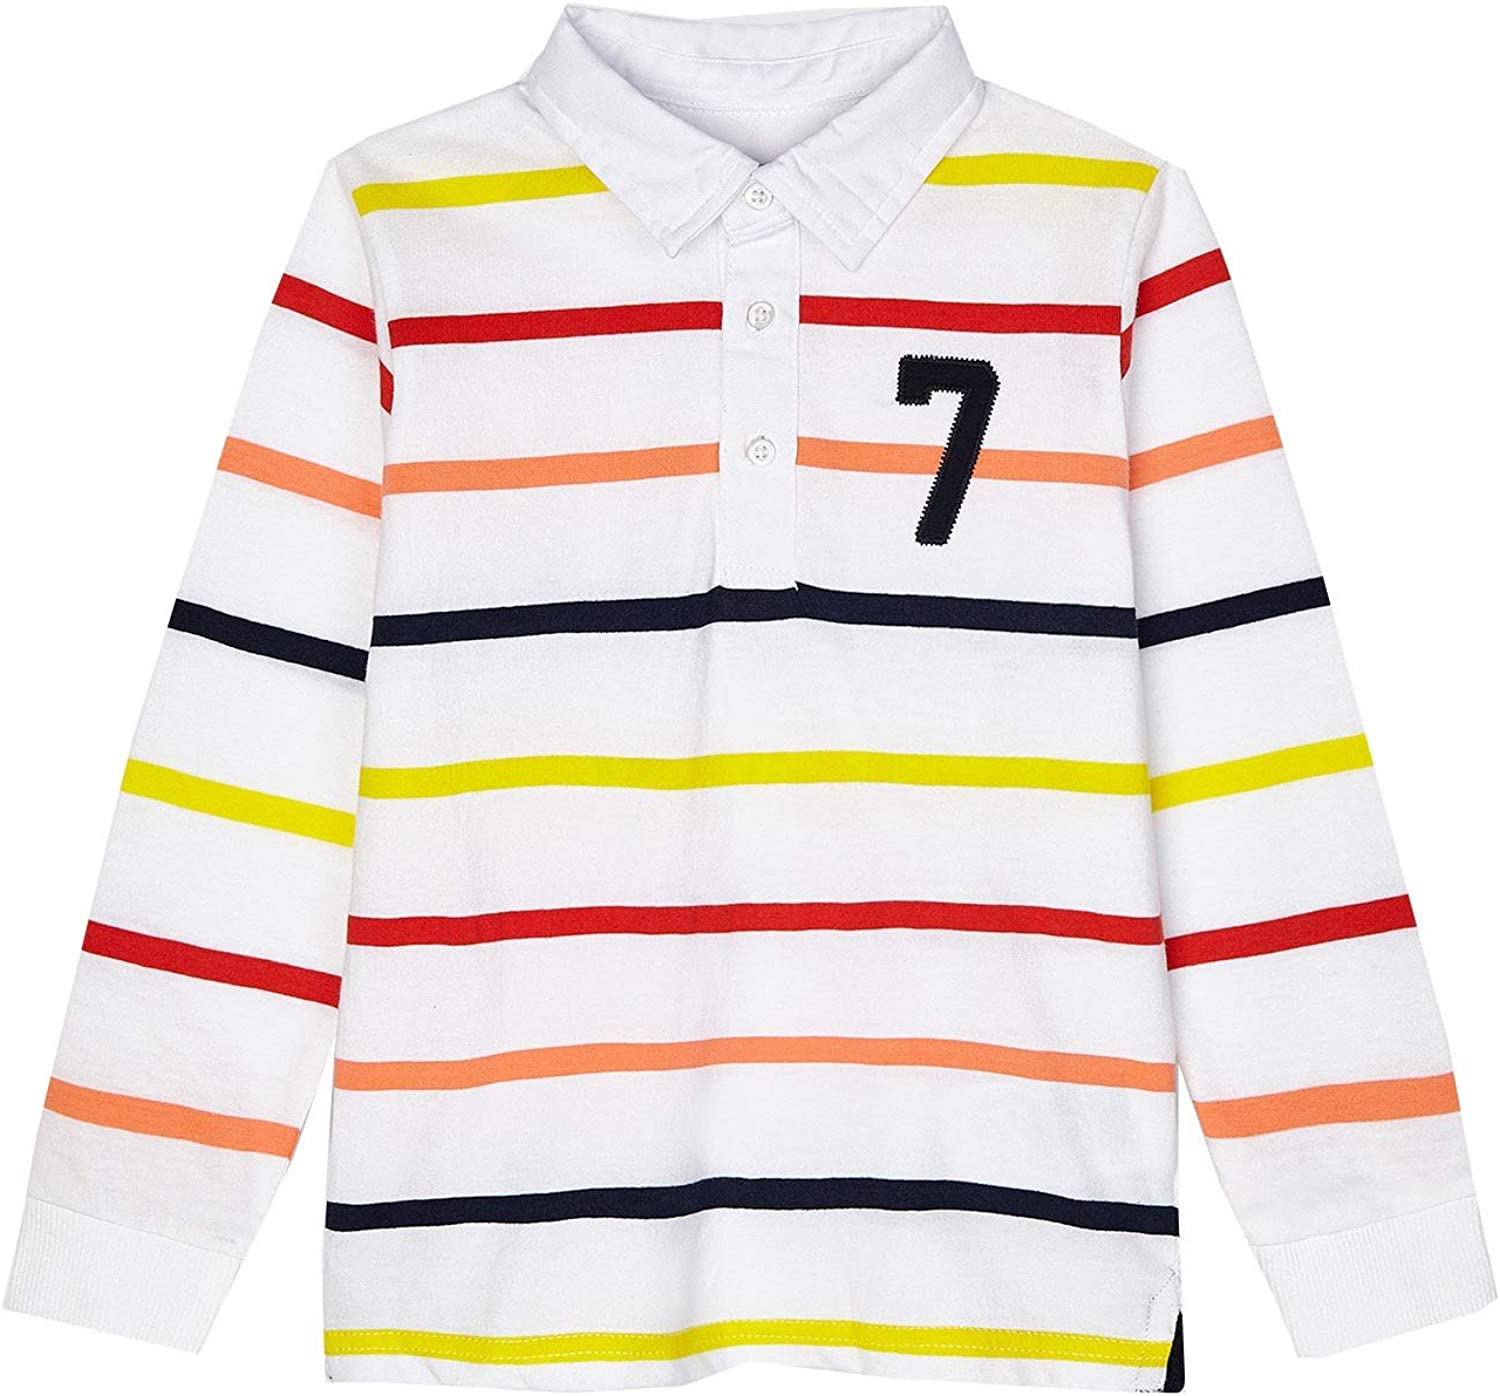 Mayoral - L/s Stripes Polo for Boys - 3114, Apricot